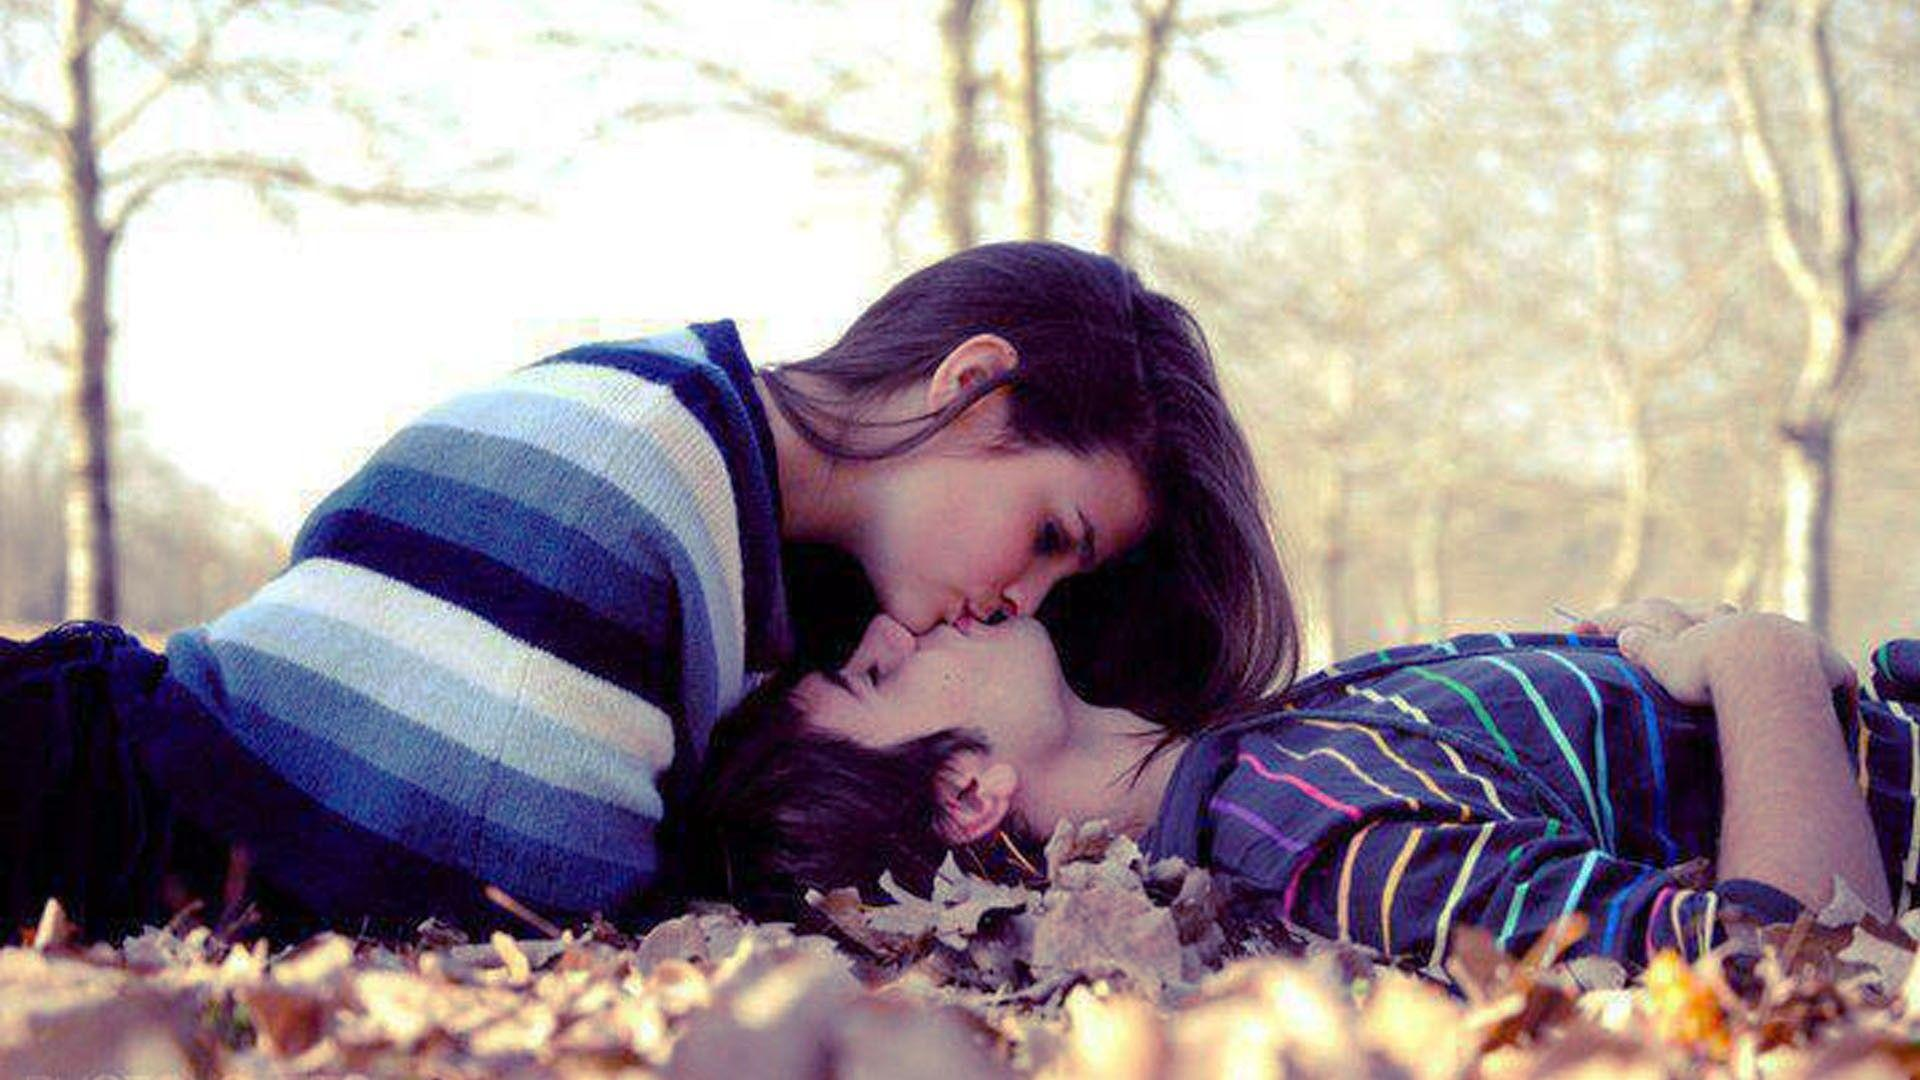 Romantic Love Couple Hd Wallpapers Wallpaper Cave